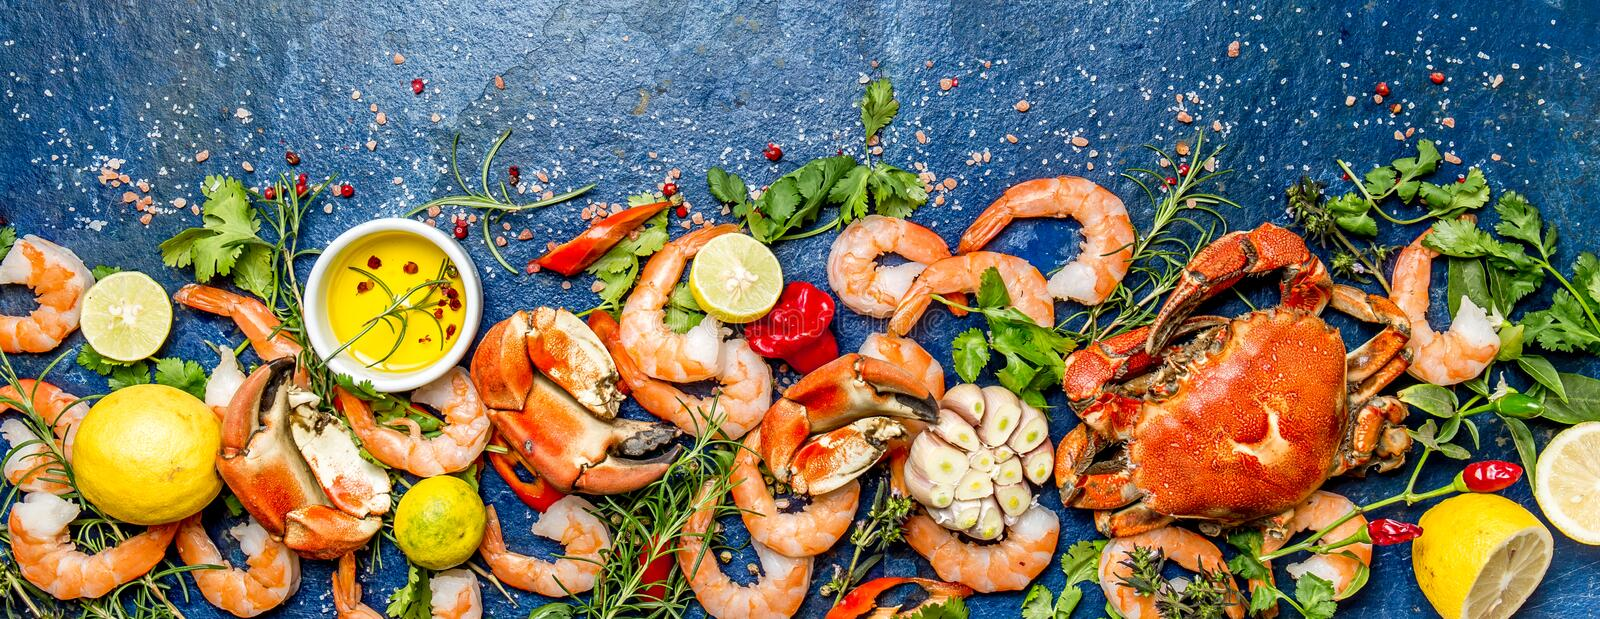 Baner. Fresh raw seafood - shrimps and crabs with herbs and spices on blue background. Copy space stock photo